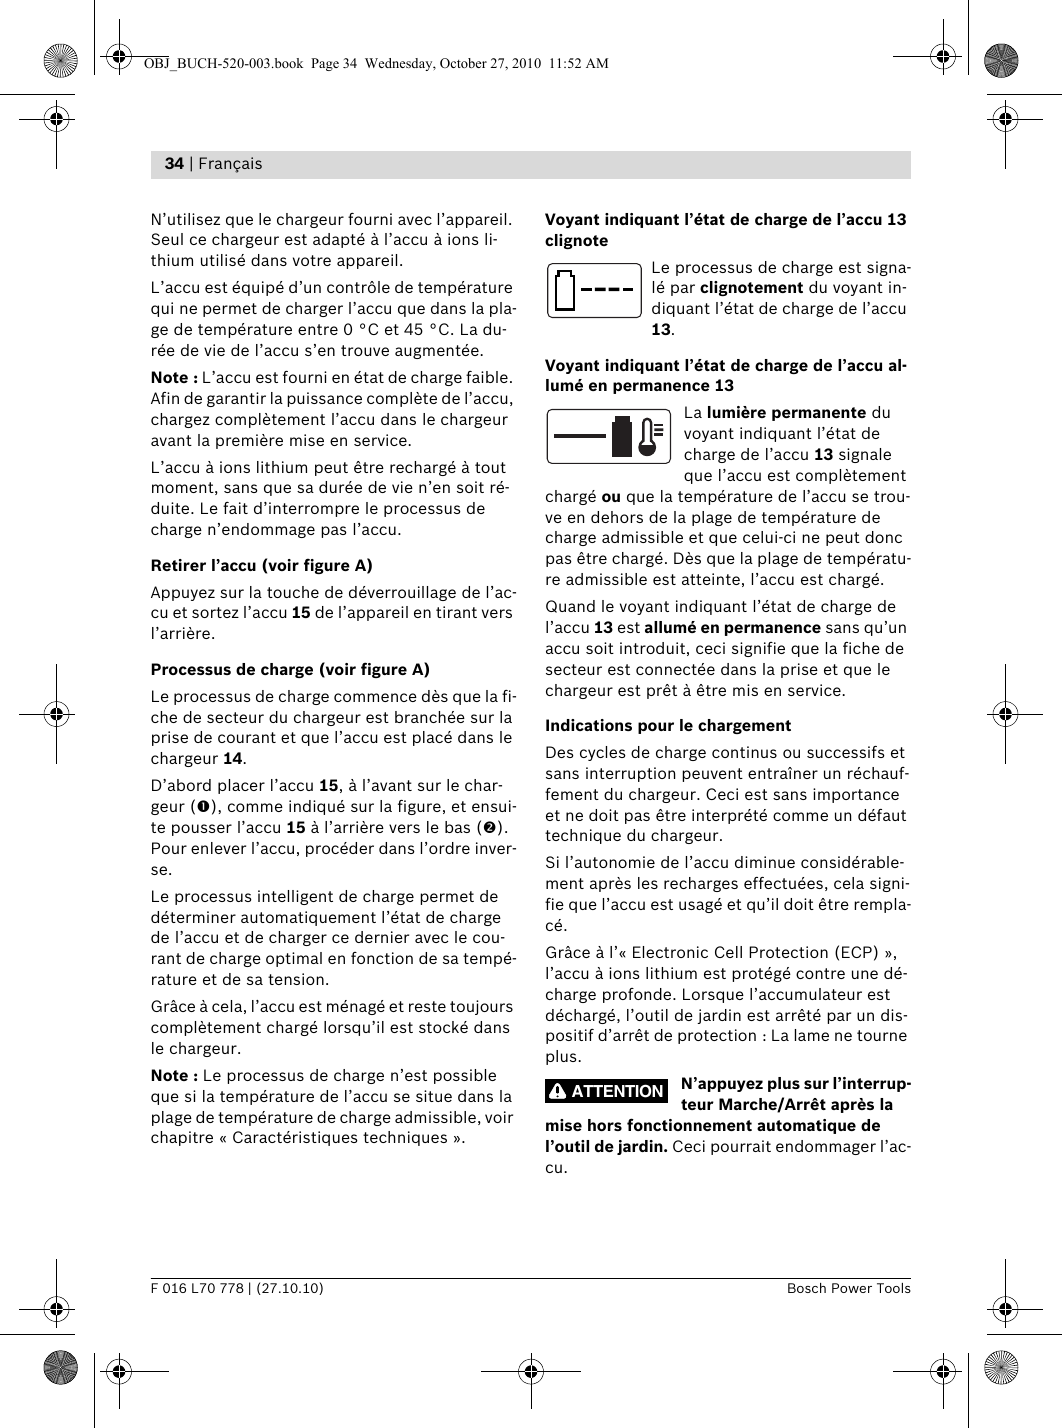 Art26LiManual User Guide Page 34